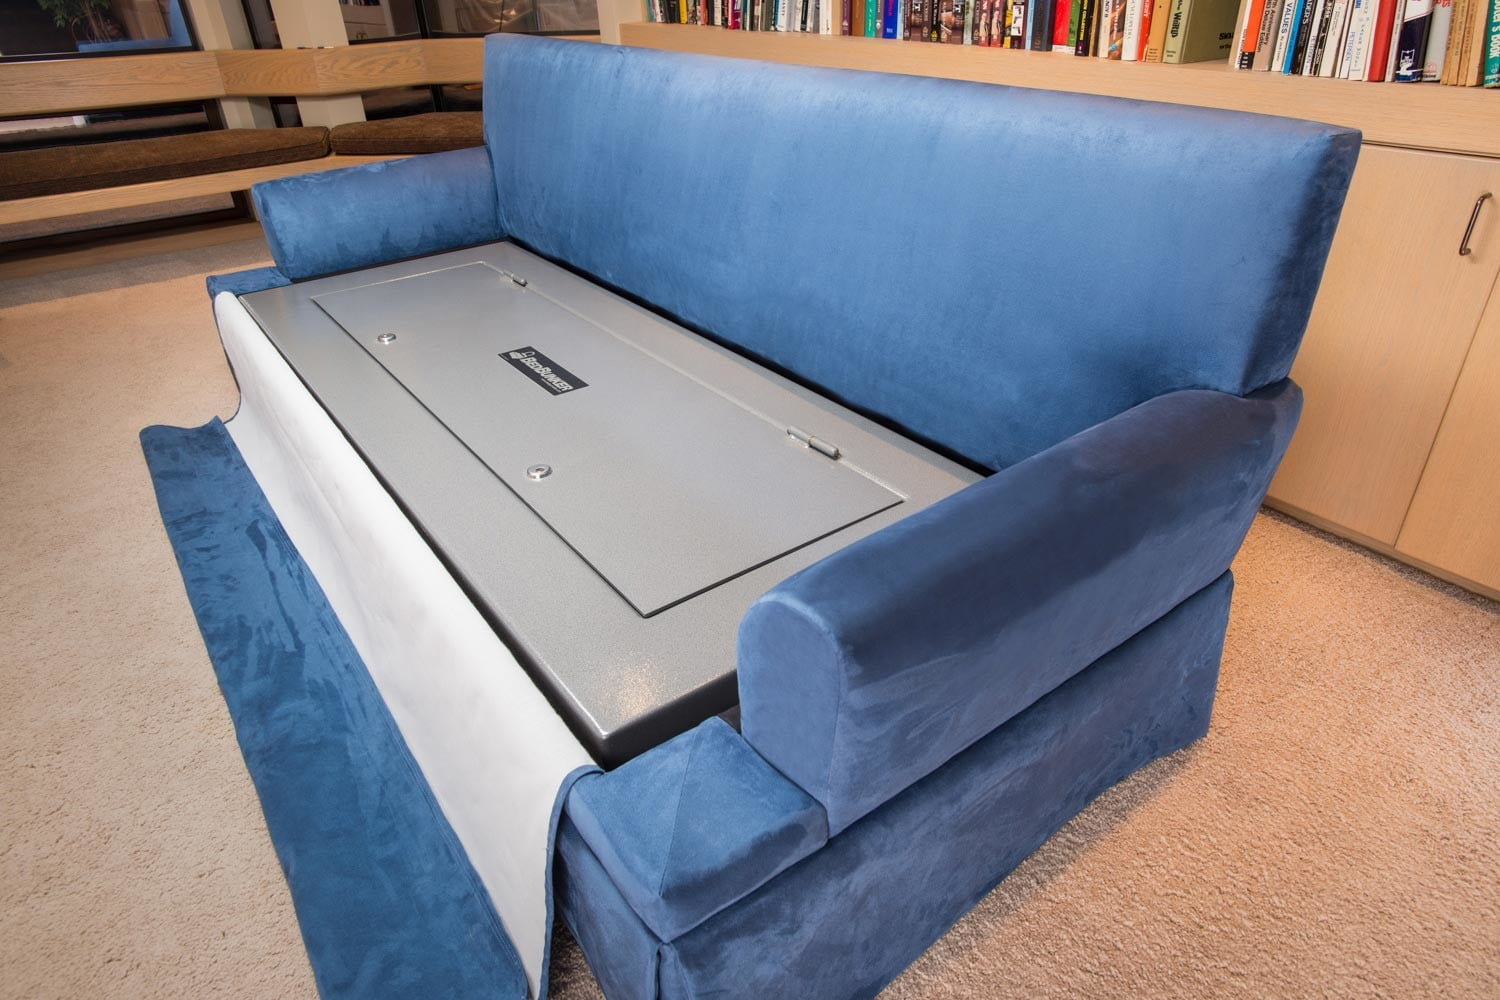 couchbunker bullet resistant sofa gun safe heracles research corporation 006